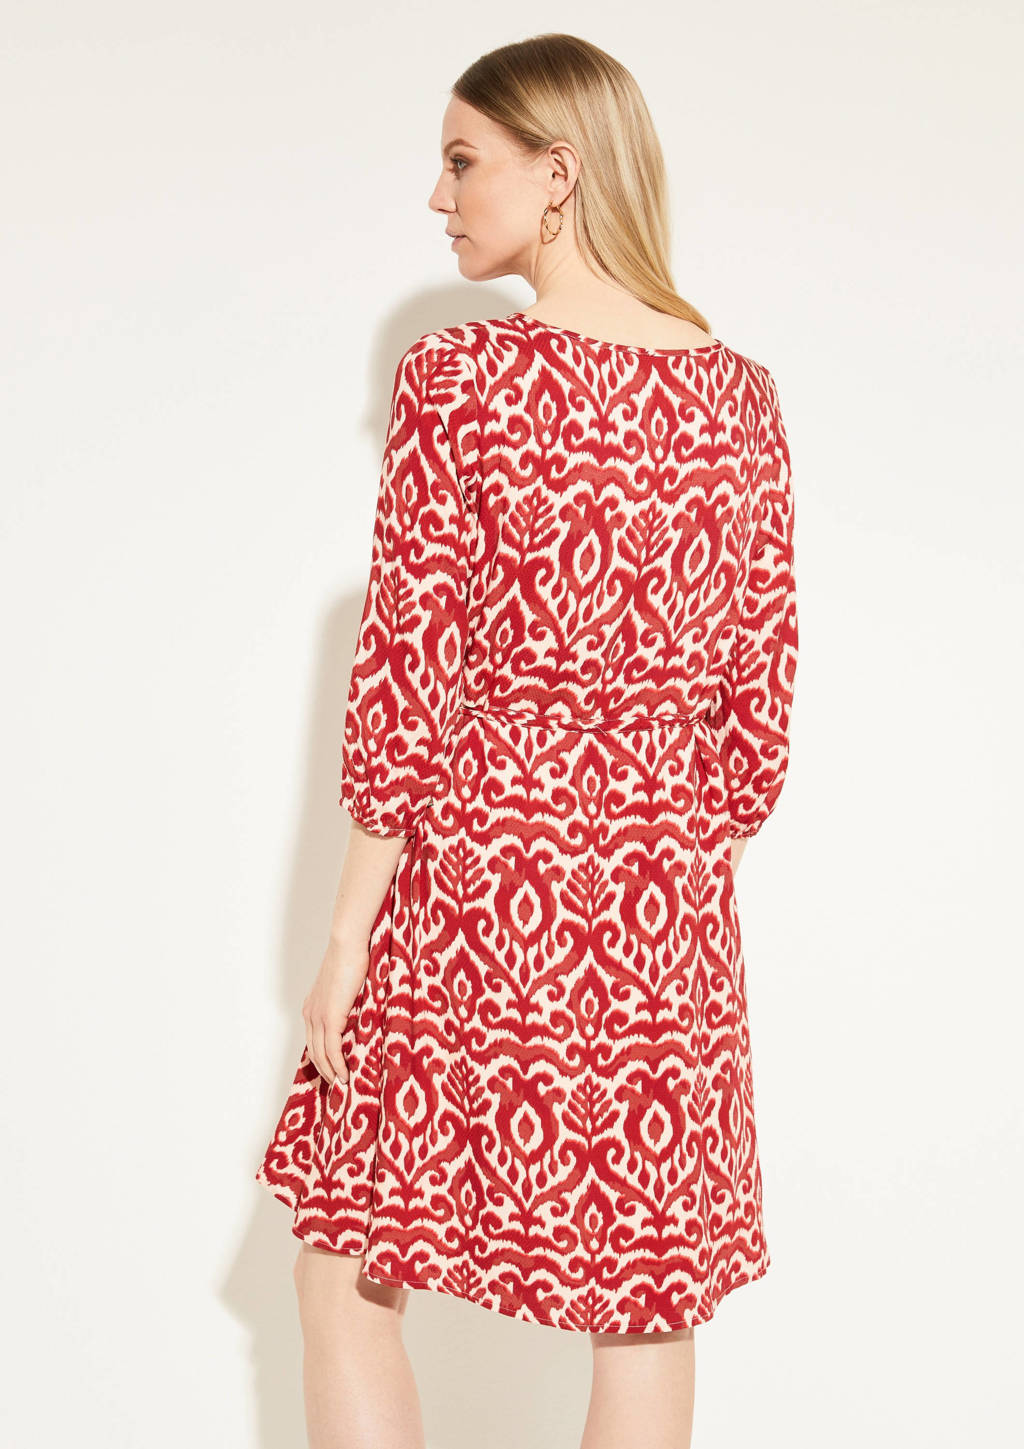 comma jurk met all over print en ceintuur rood/ecru, Rood/ecru